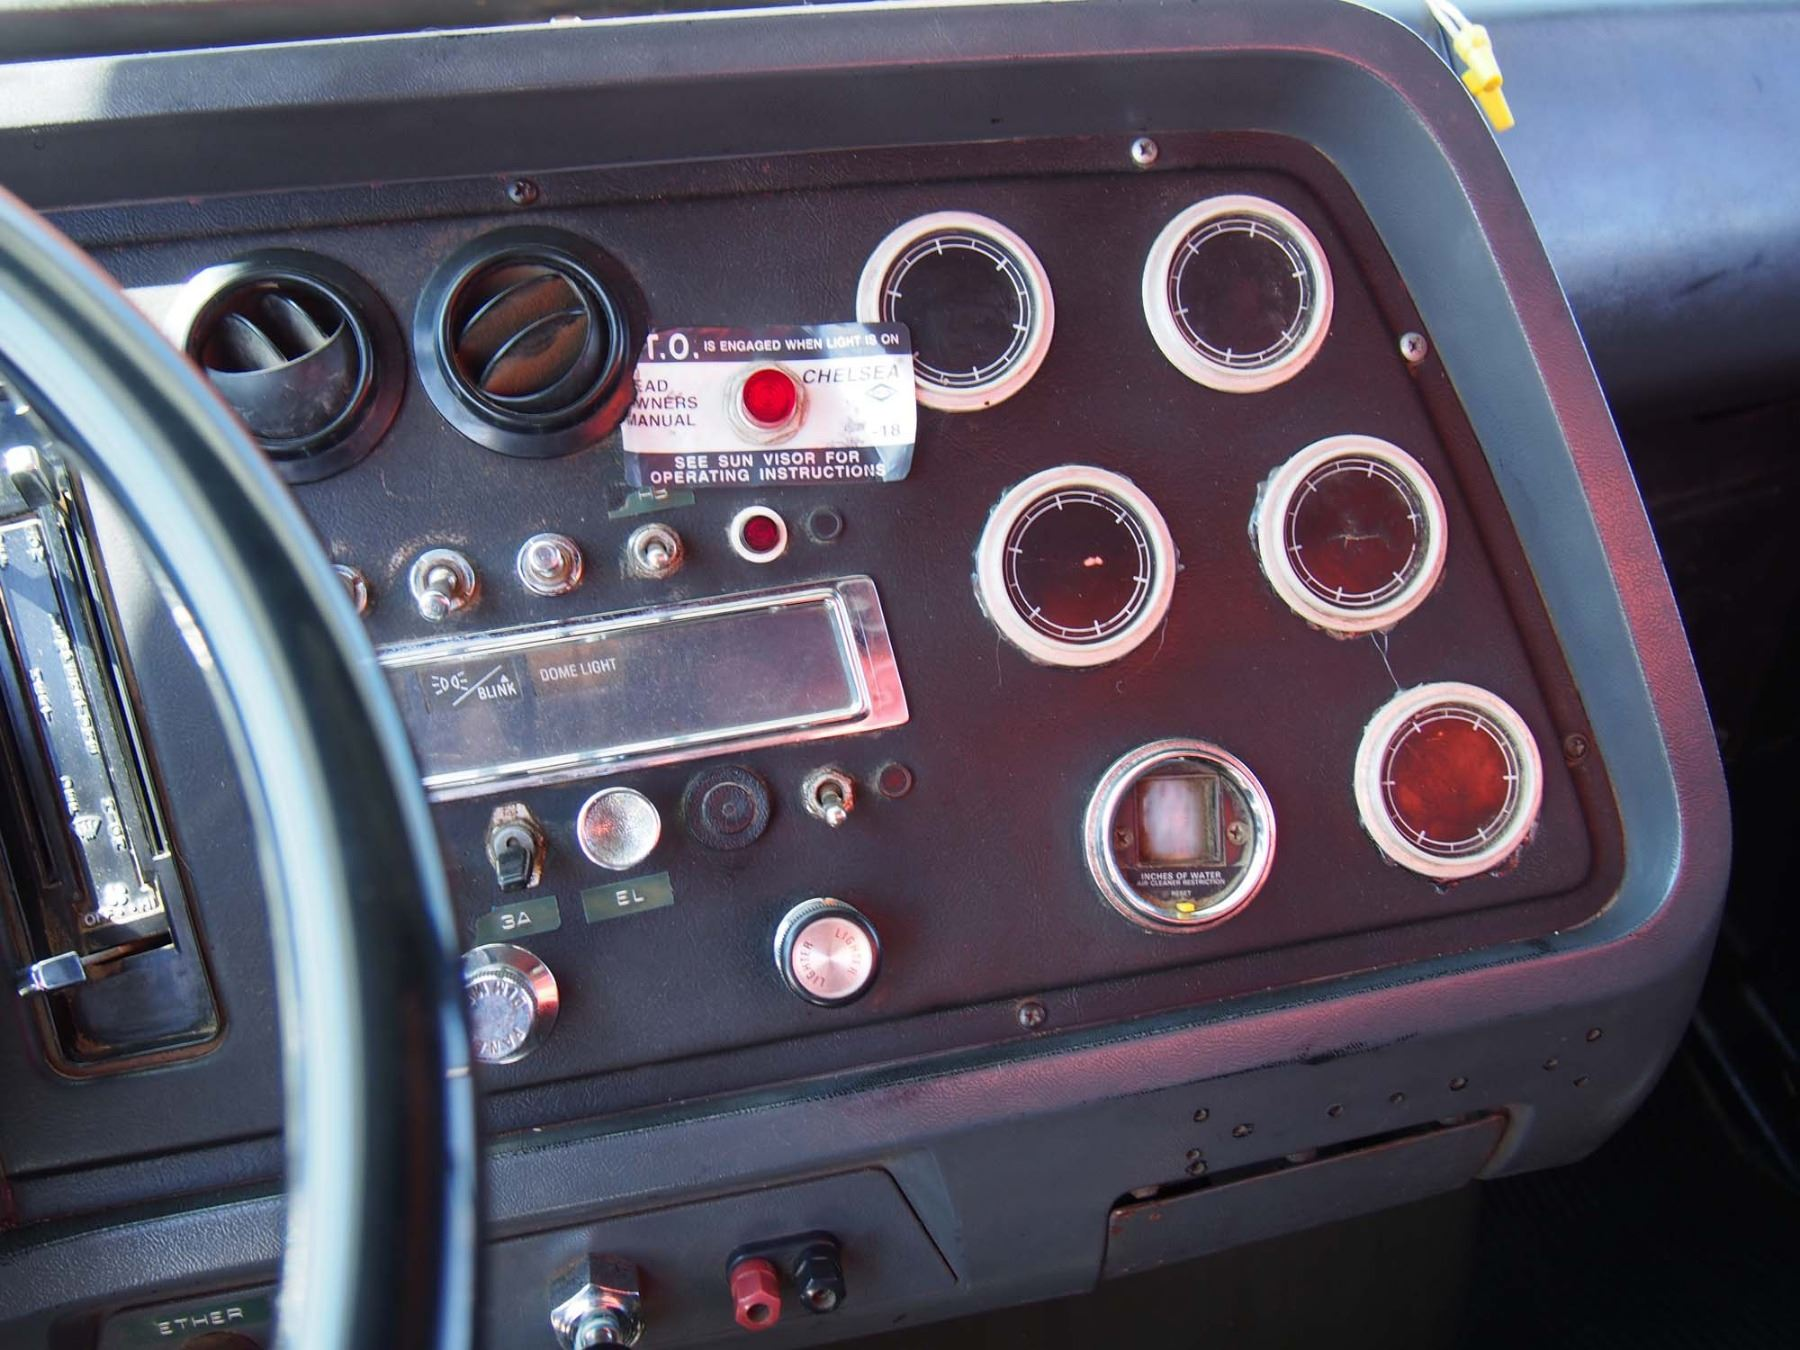 medium resolution of  image 8 1988 ford l9000 tandem truck 855 cummings engine 20 box and